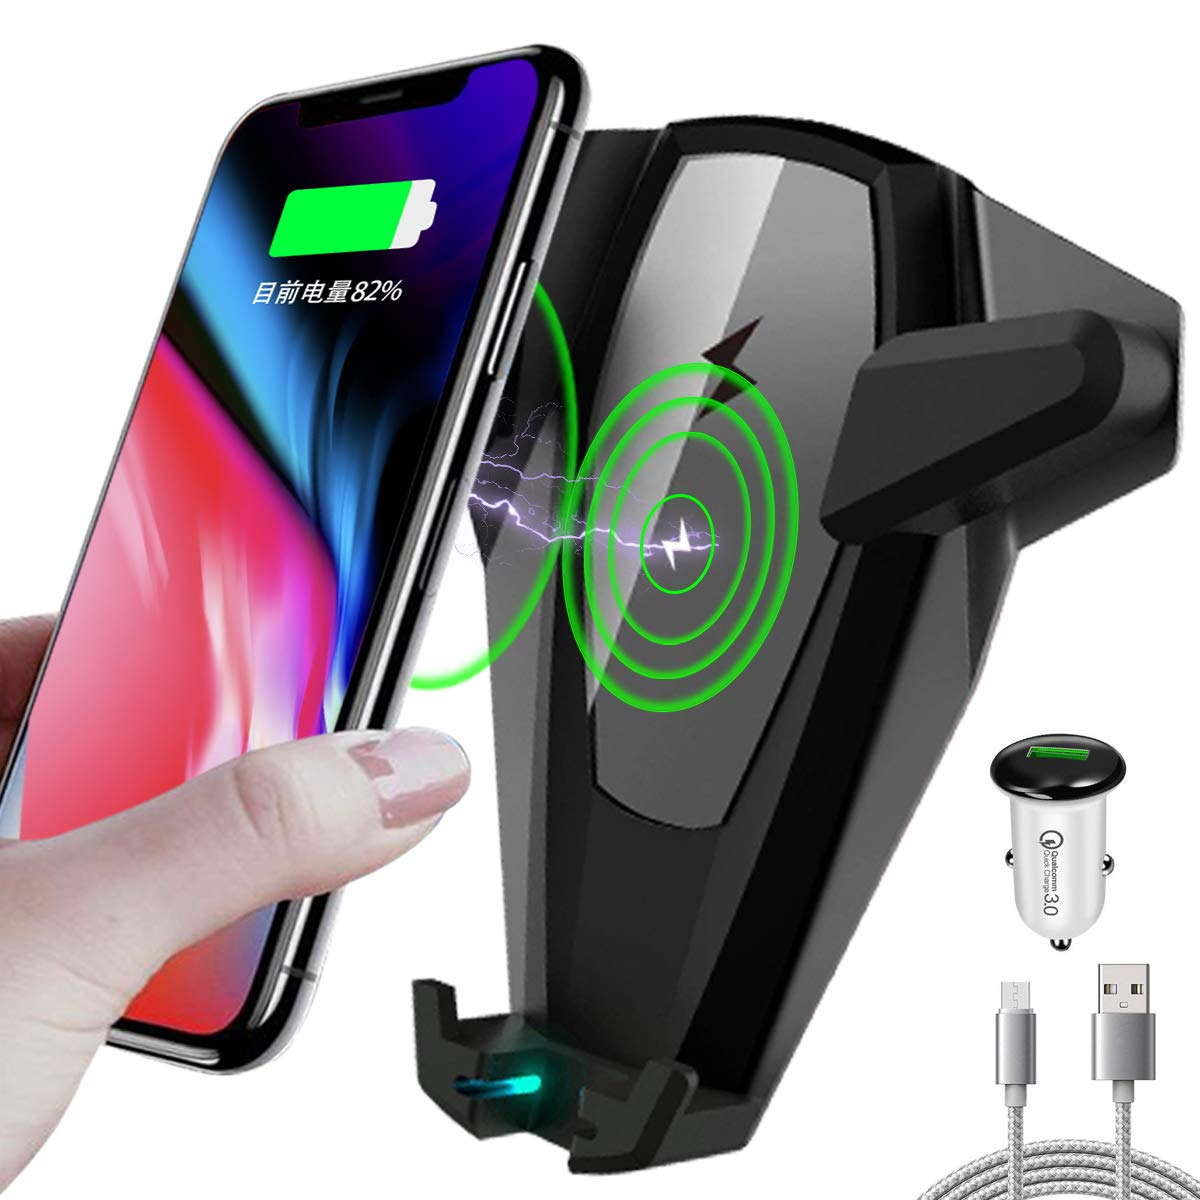 rhungift Wireless car charger car cell phone mount Gravity Linkage Phone Holder with Air Vent for iphone x 8 plus samsung galaxy s7 s6 edge+ note 5 s8 S9+ with car-dashboard suction mount gravity linkage air vent phone-holder CAR-CA-002